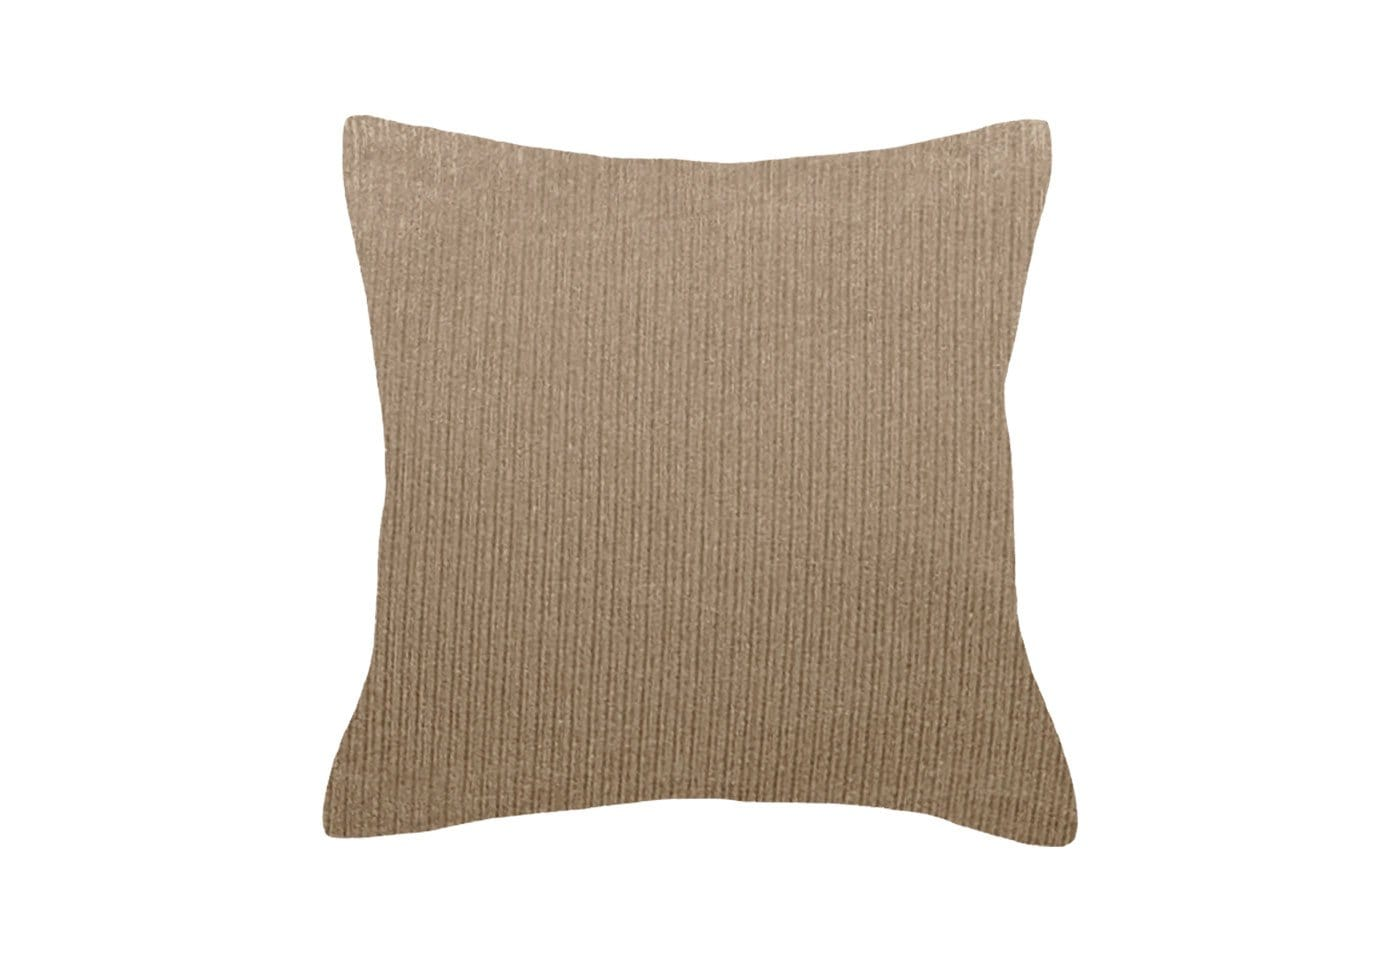 Ultimate St Chenille Ind 18 Inch Square Pillow Cover - 18x18 / Tan